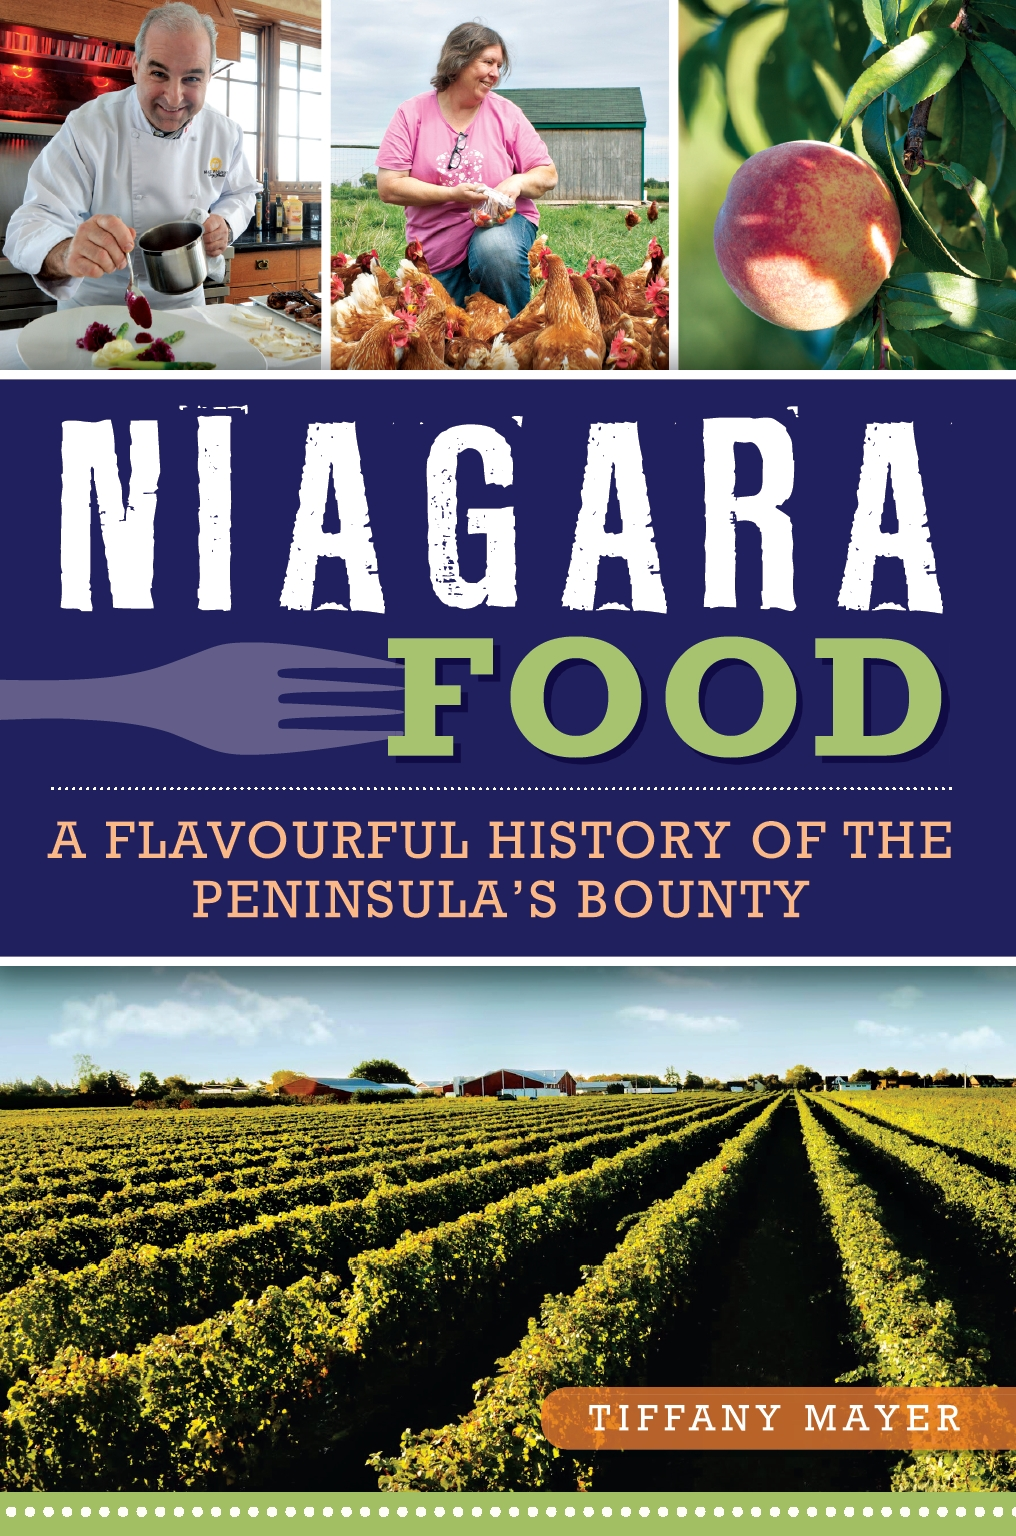 Niagara Food by Tiffany Mayer